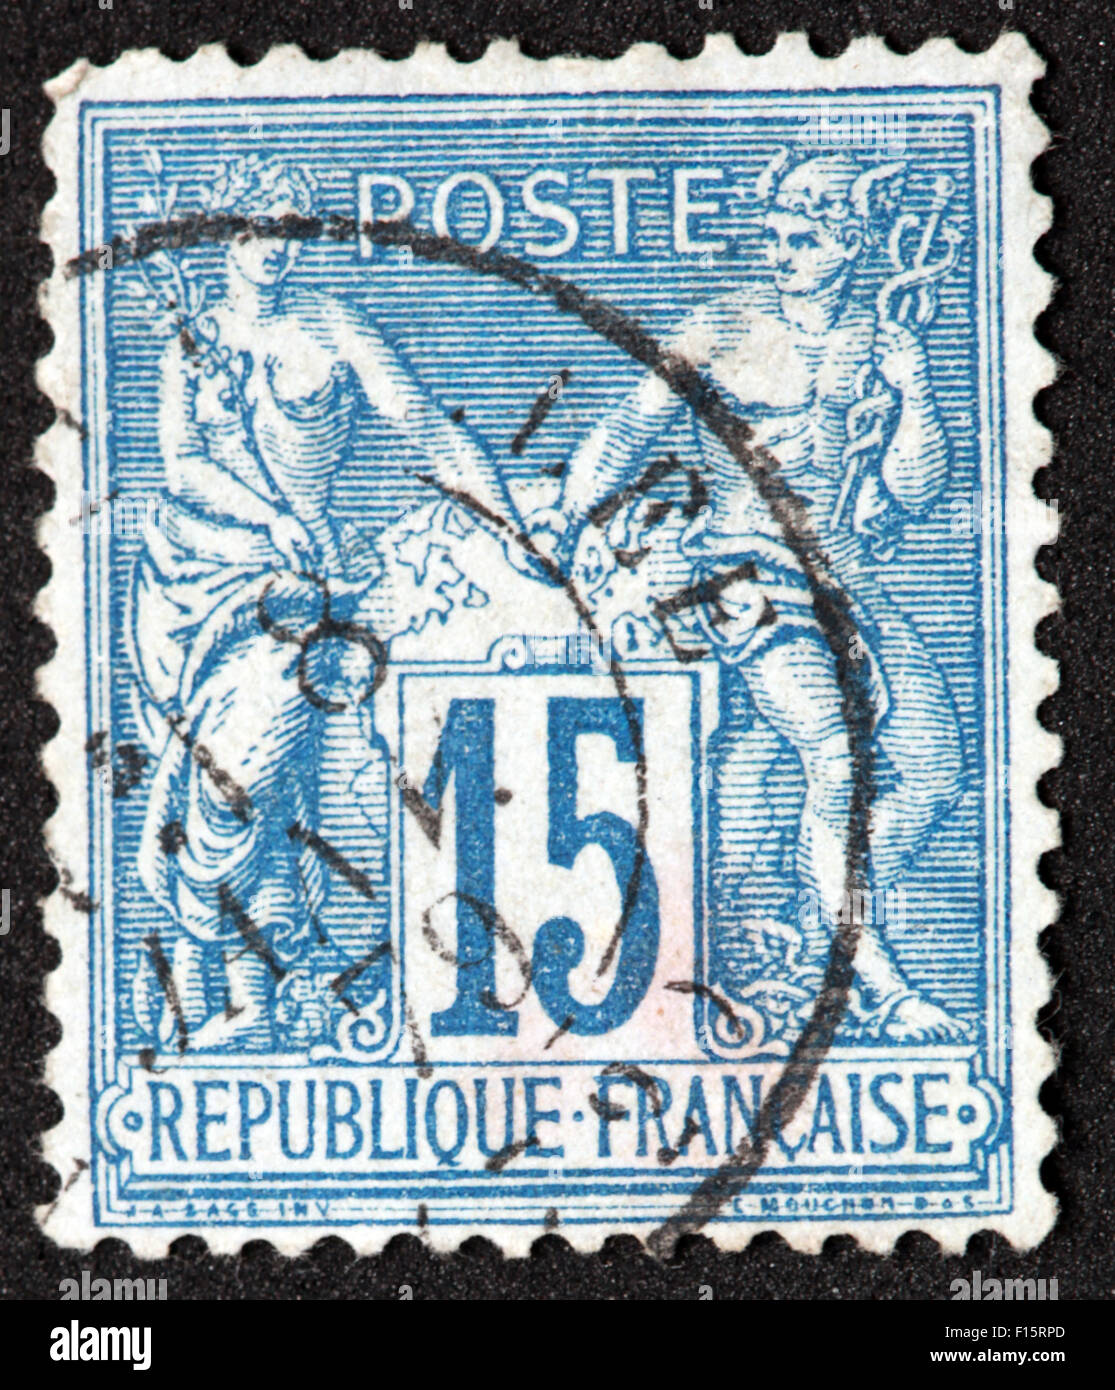 Republique Francaise 15c Stamp Stock Photo